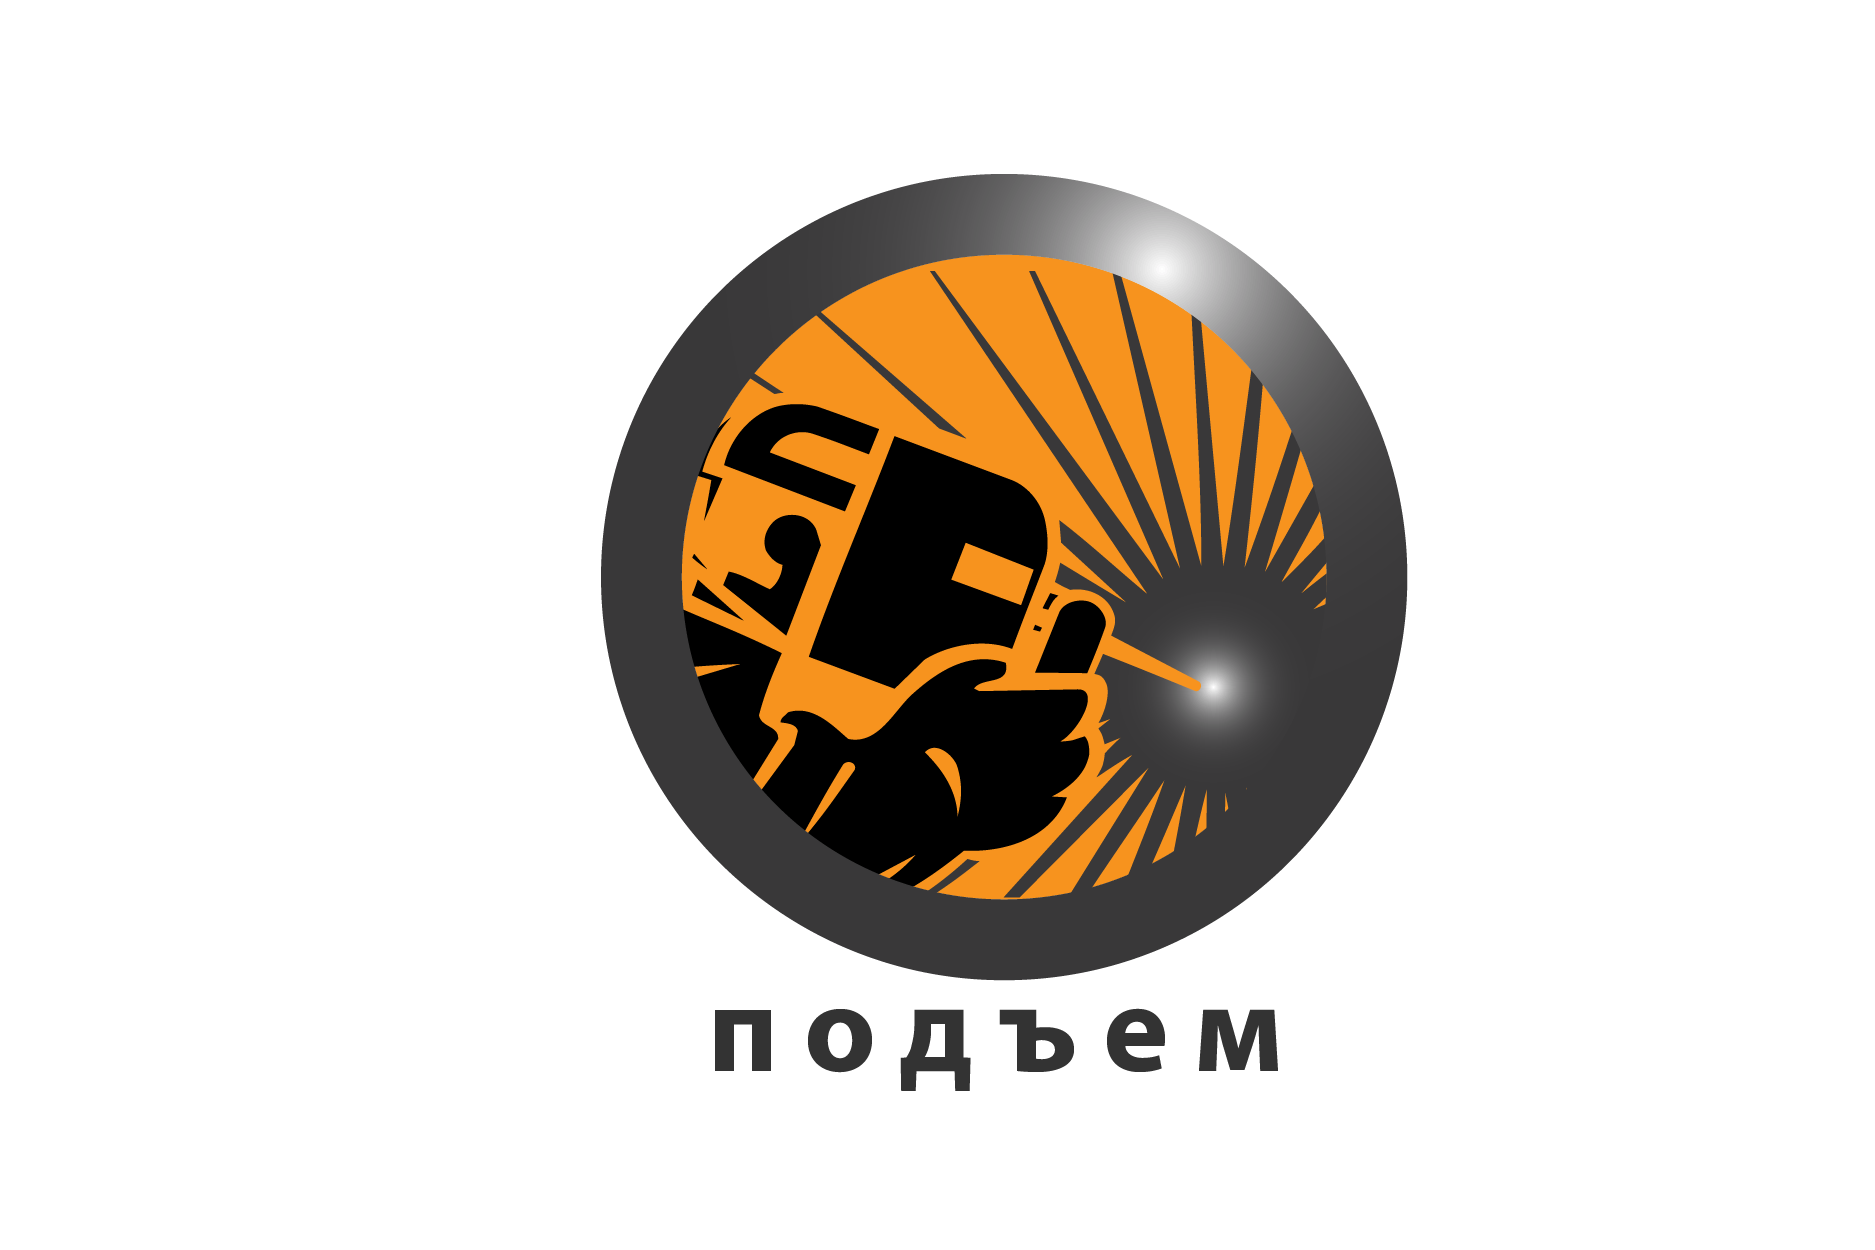 Logo Design by Private User - Entry No. 12 in the Logo Design Contest Artistic Logo Design for подъем.